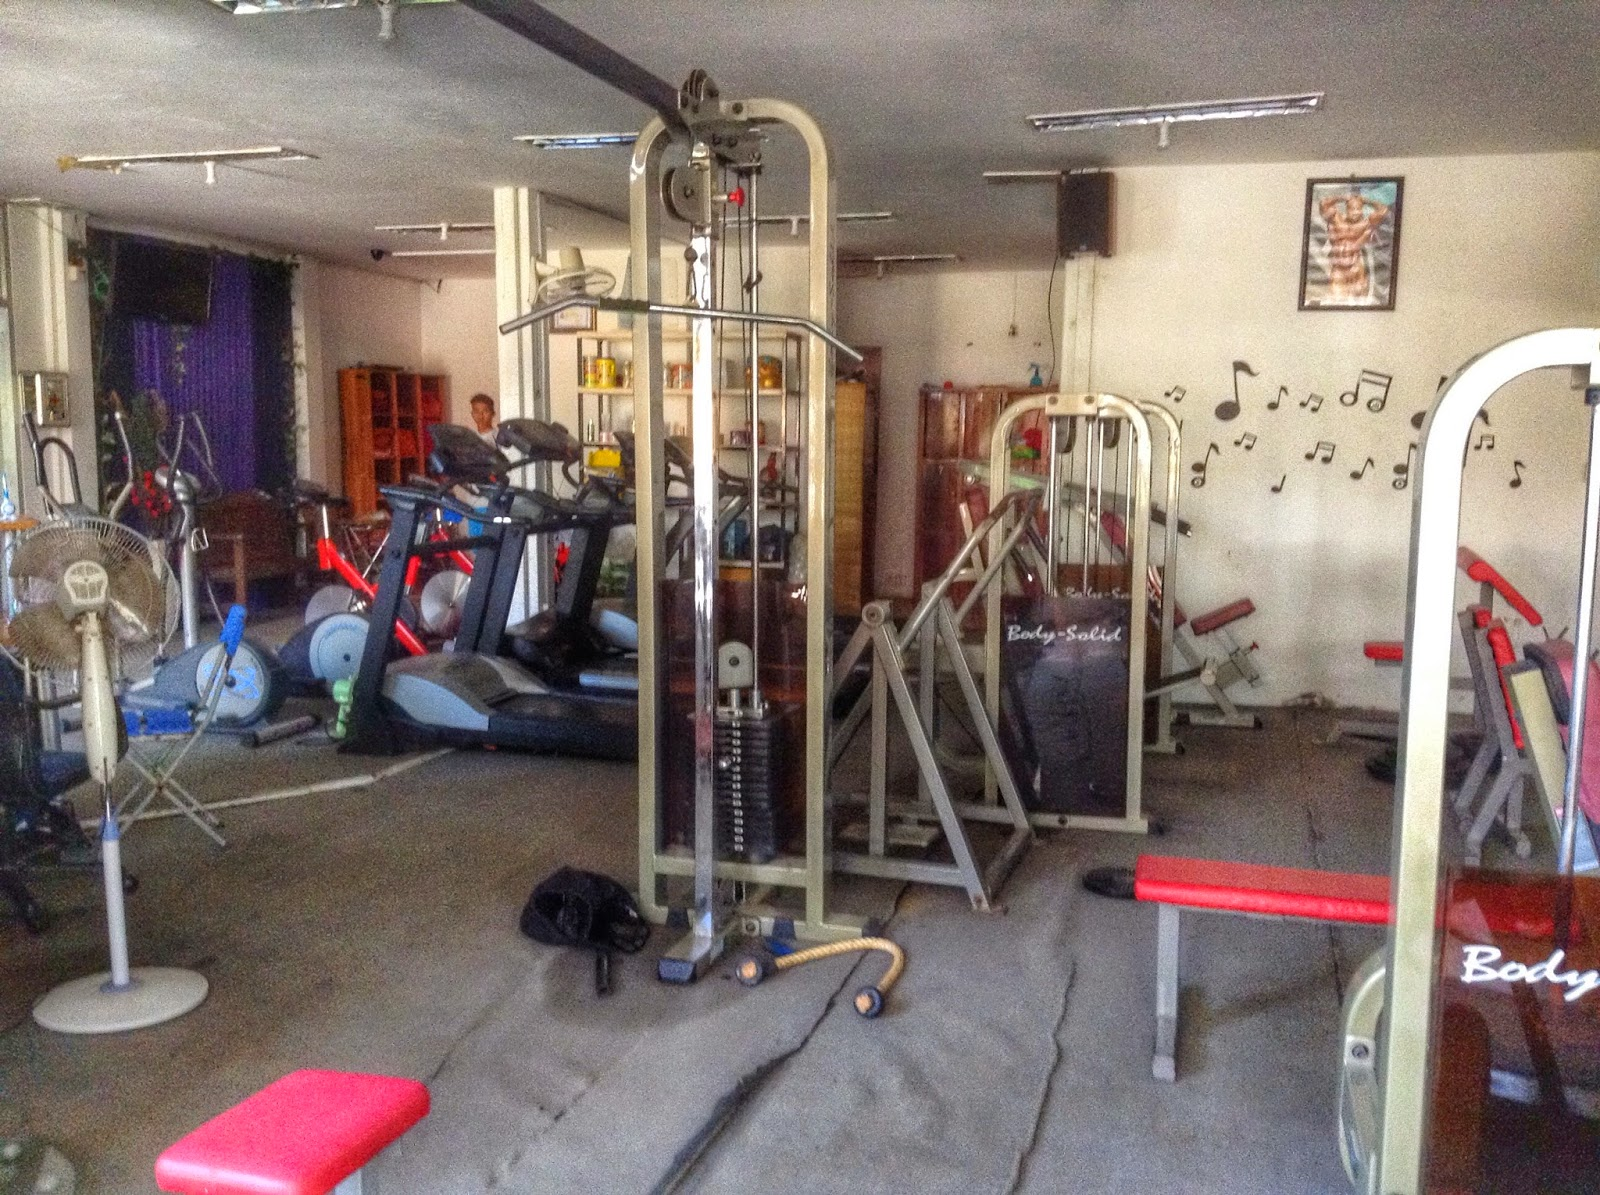 Gym in Phnom Penh, Cambodia - V-Friend Gym